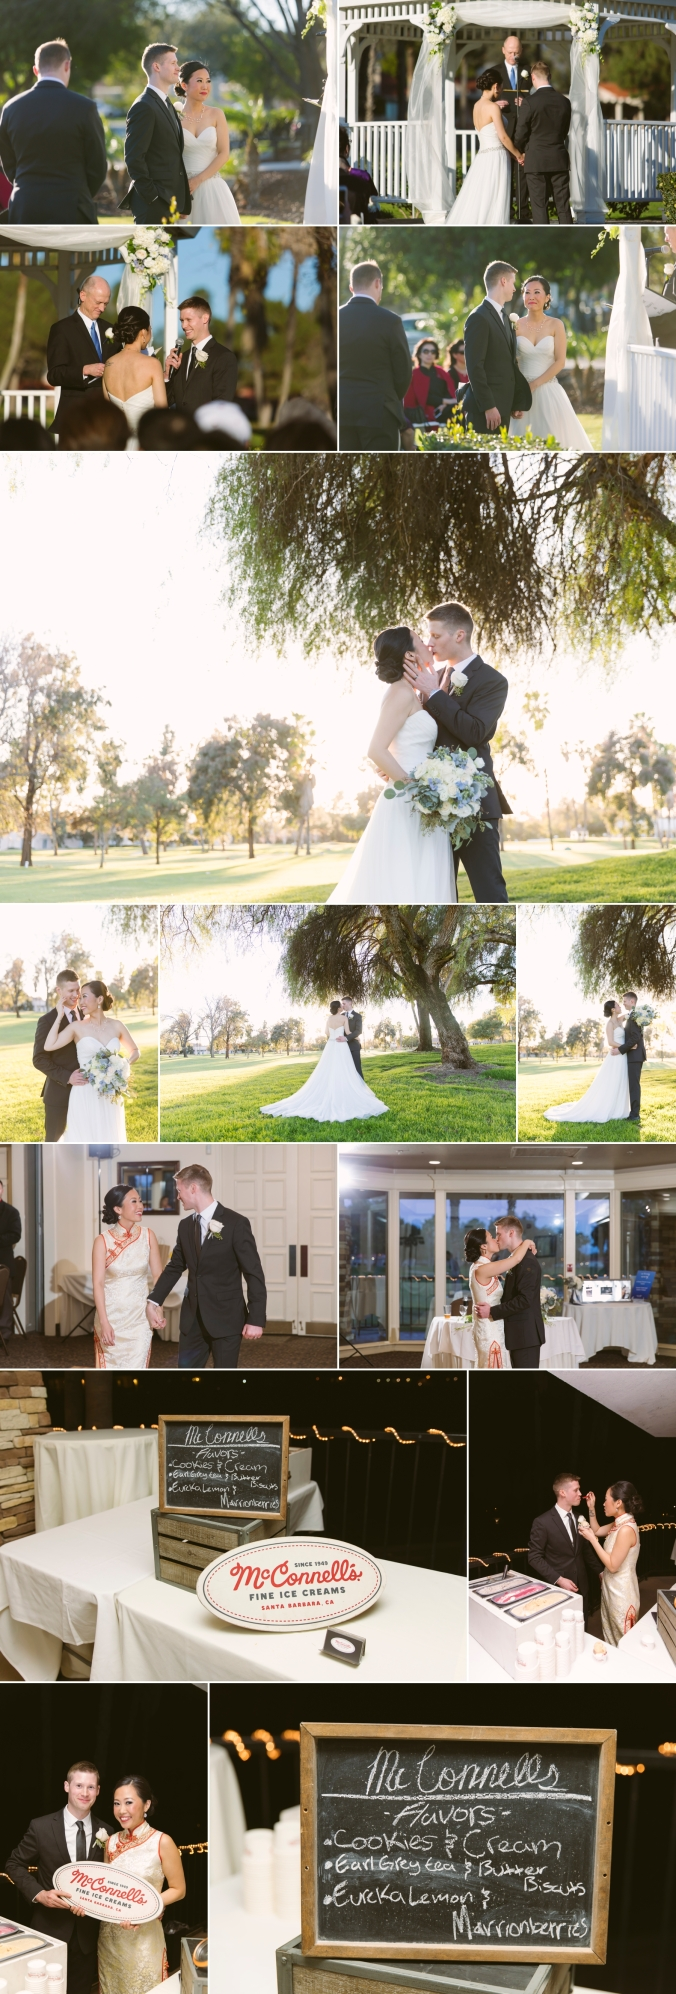 affordable-wedding-photography-orange-county-wedgewood-upland-hills-wedding-shy-heart-studios-2